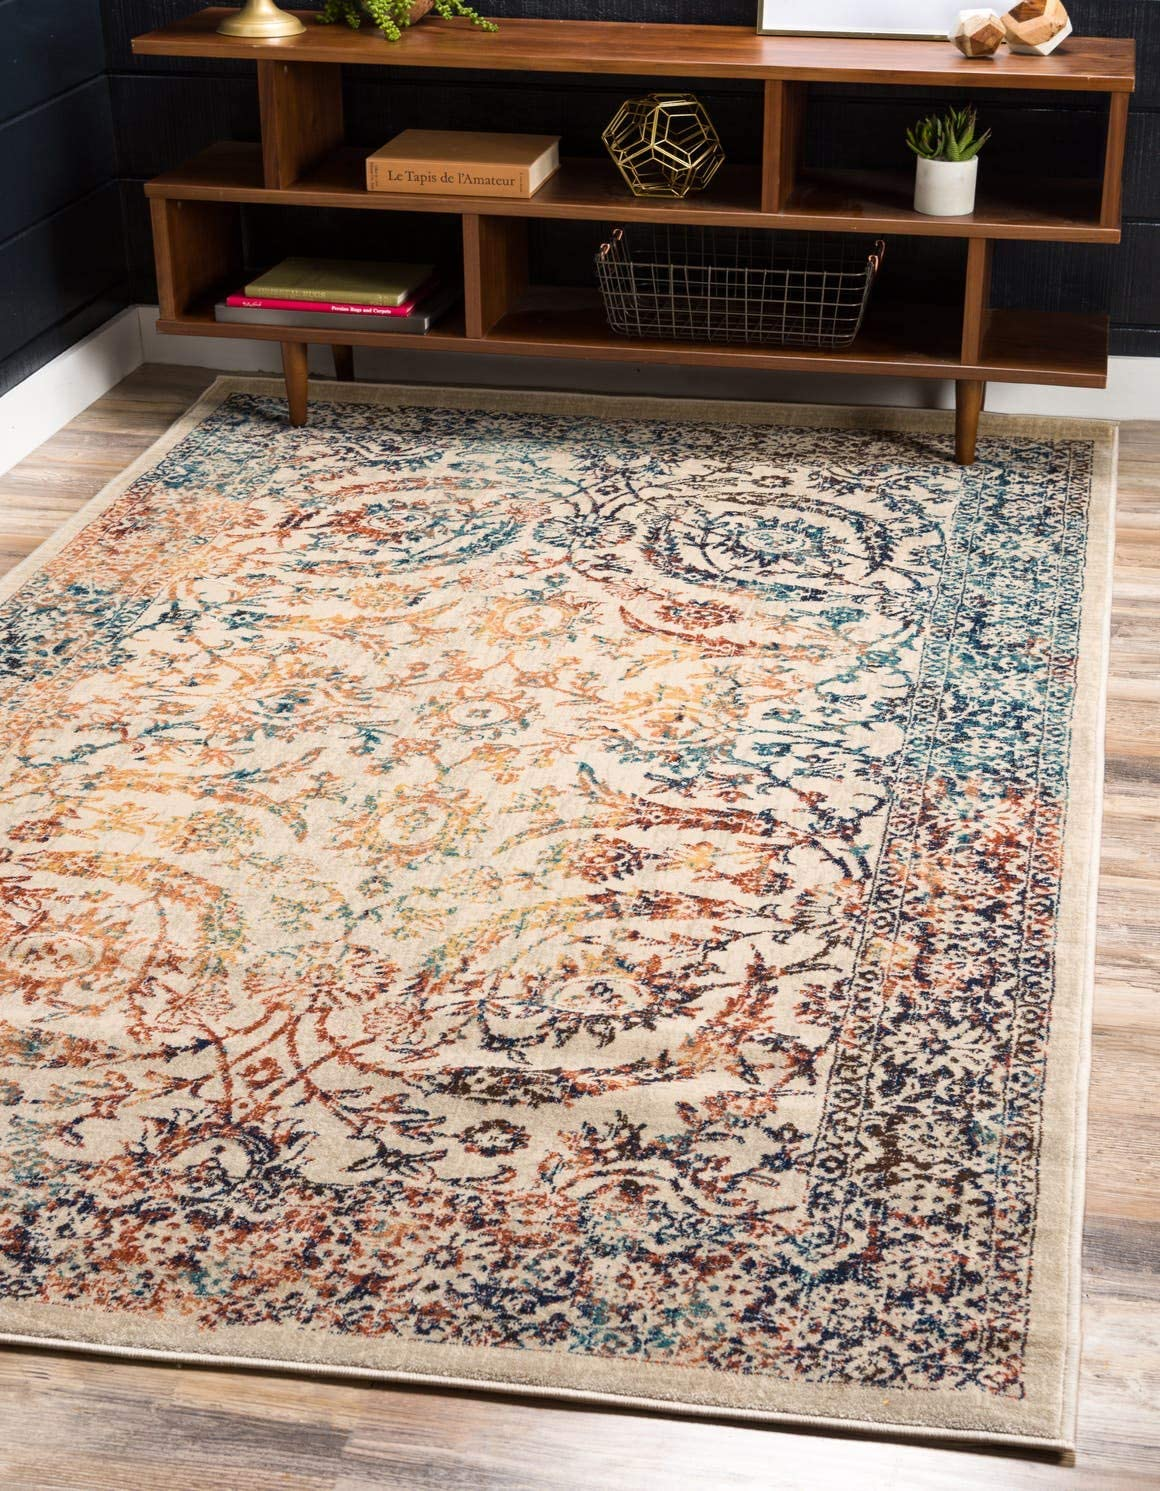 Unique Loom Oslo Collection Distressed Over-Dyed Botanical Tradtional Beige Area Rug 8 x 11